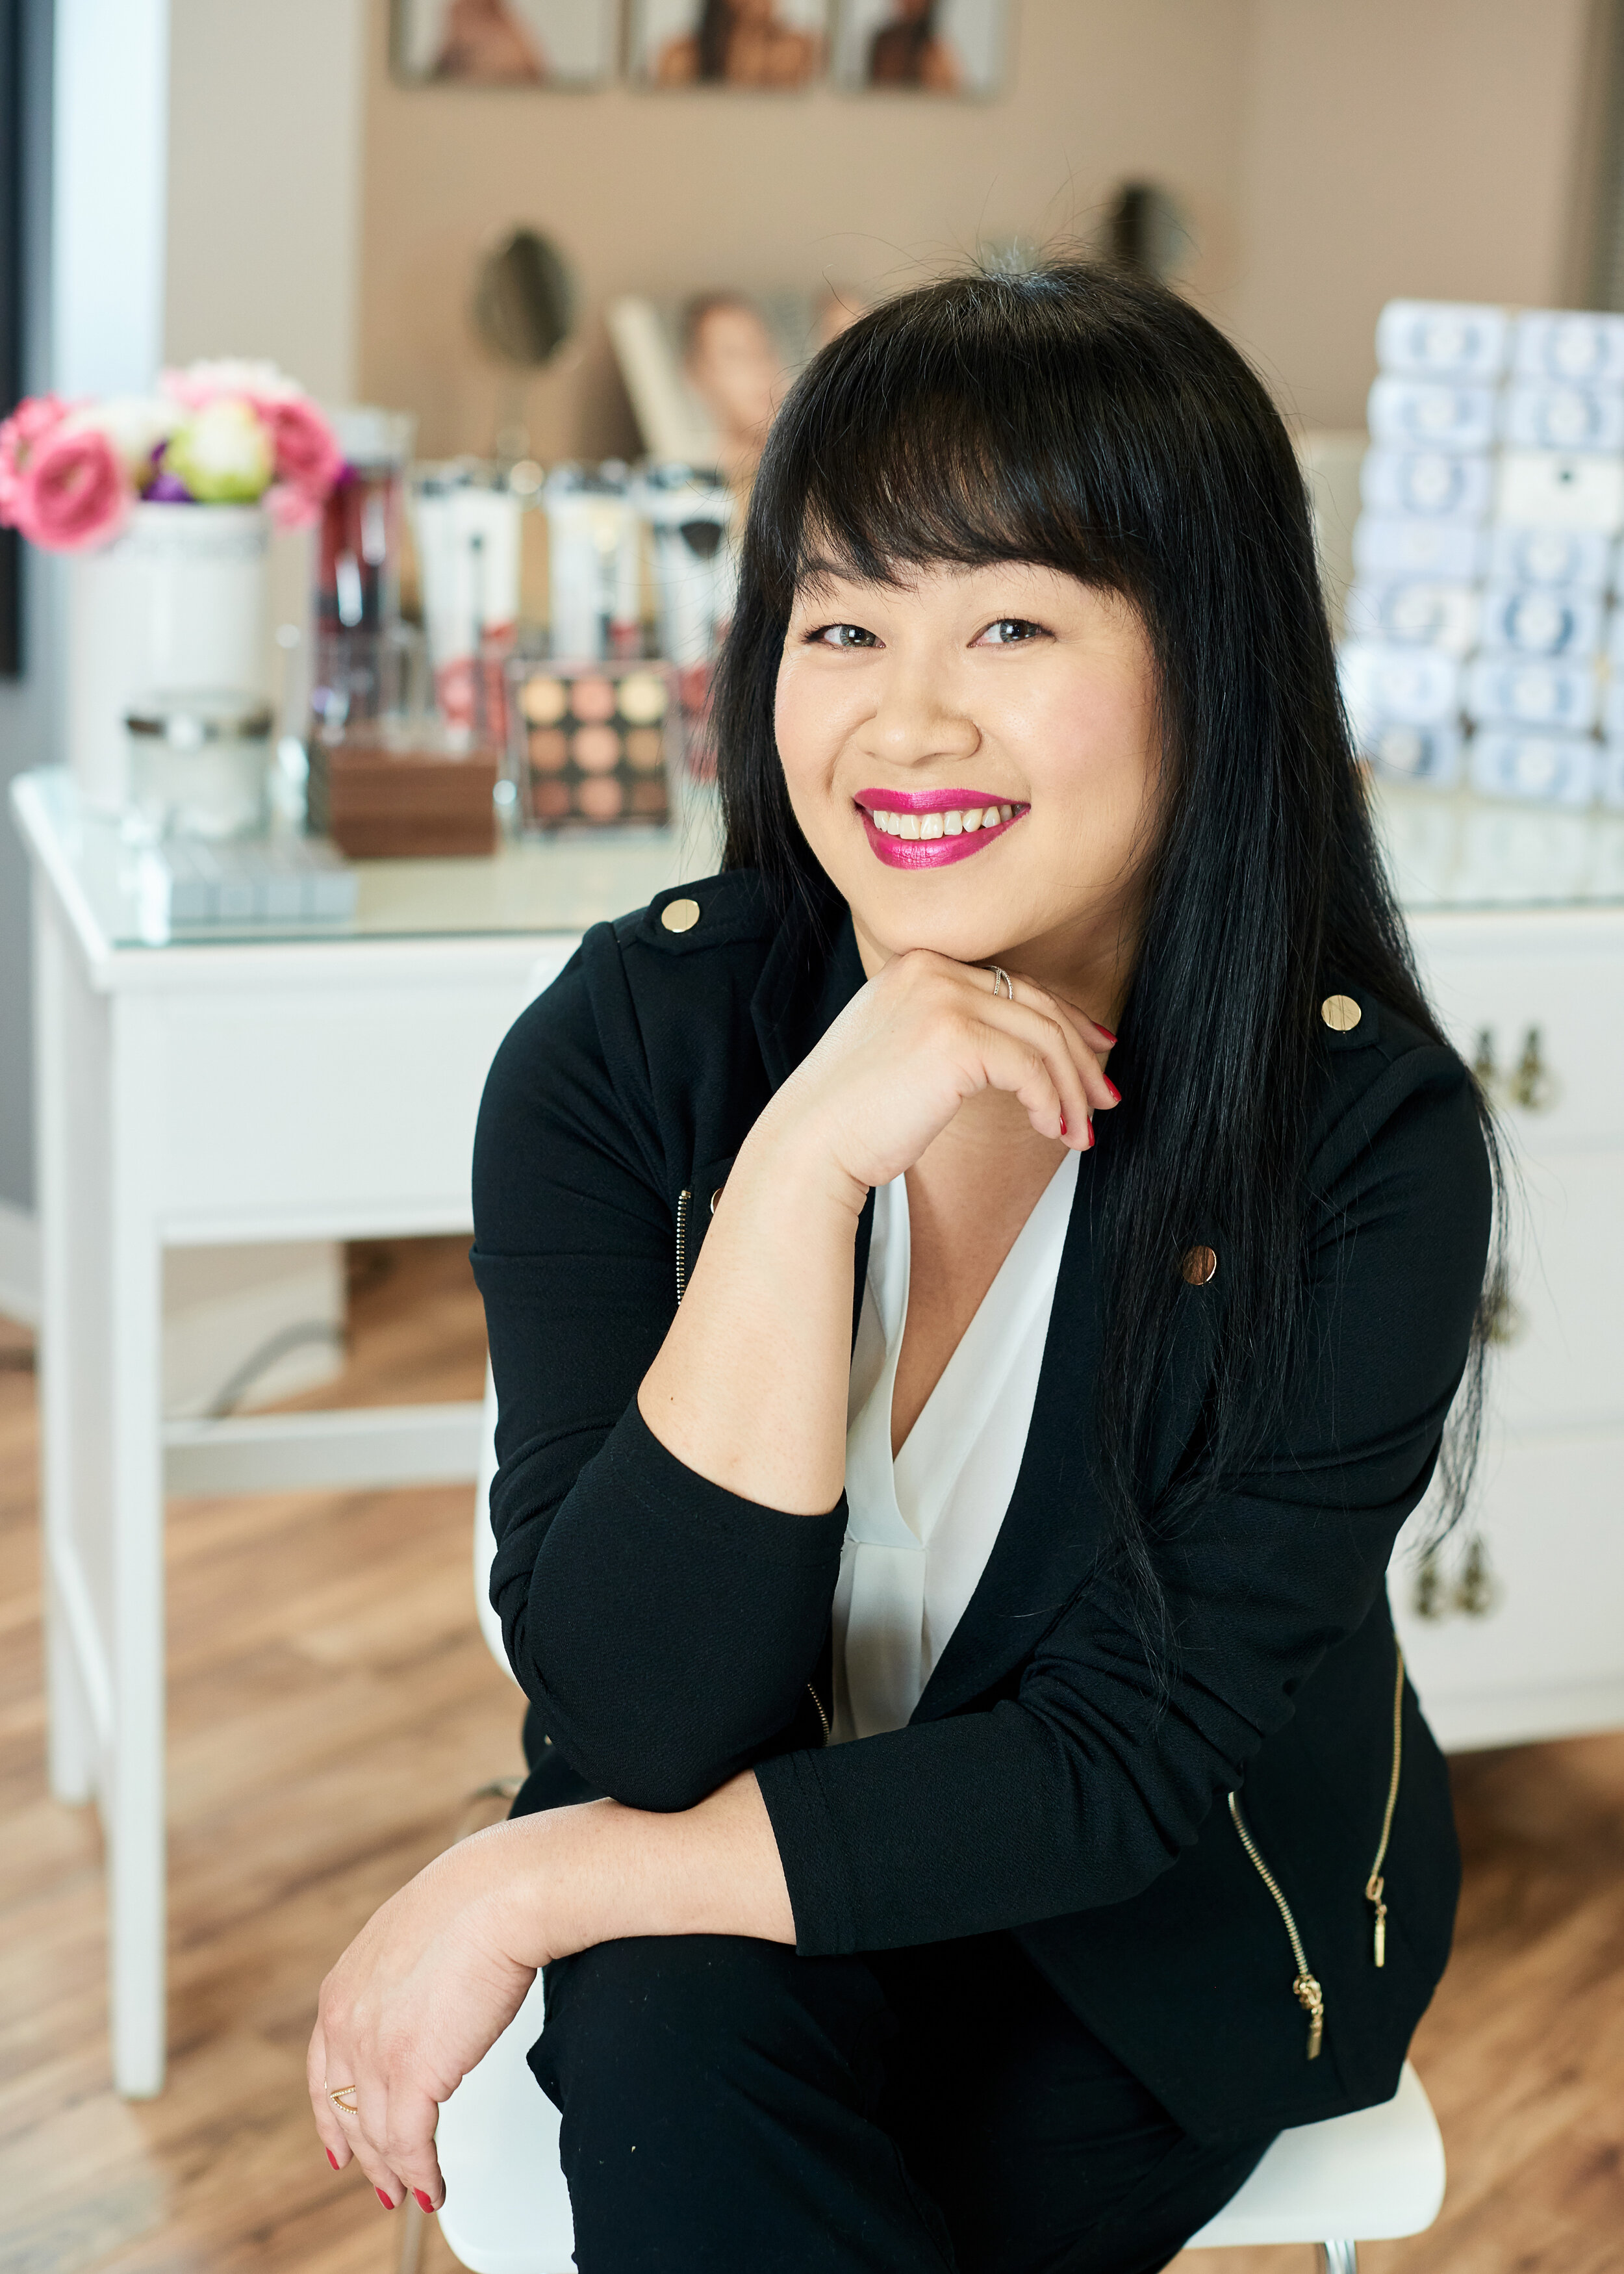 Vanexa - OWNER/MAKEUP ARTIST/ESTHETICIAN Owner of V Beauty House, Vanexa, is a passionate, trusted and highly sought Central Wisconsin Professional Makeup Artist. She has earned her reputation for her clean, precise & eye for detailed work. Vanexa is loved by brides, photographers, creative directors, and countless amounts of clients for her well-rounded skills. From the versatile styles of makeup ranging from bridal, print and film/tv mediums, Vanexa does it all; never leaving a client unsatisfied.Vanexa is a Wisconsin State licensed esthetician (Skin Care Specialist) graduated with high honors at the State College of Beauty Culture and immediately pursued the world of makeup artistry. She quickly learned the ins and out of the makeup world. Having worked on all skin type and skin tone from both men and women in her chair, Vanexa had come to the realization that great makeup & skin care service didn't have to be a luxury.Personalized beauty service should be available and accessible to anyone with the desire to look and feel great. The experience made her realize that she wanted to create a skincare & makeup studio where the experience with a professional is unlike any other, as well as high quality makeup and skin care line that would meet the her standards and the needs of her clients. That dream came true with the opening of her studio in Schofield, next to Wausau, WI.Vanexa has worked with: CNBC, Aspirus, Evergreen Pictures, Fox News And Friends, Chanel 7 WOAW, Mercury, Mata Trader, Bags Borrow Steal, Eastbay, Footlocker, Security Health Plan & Framesi Professional Hair.